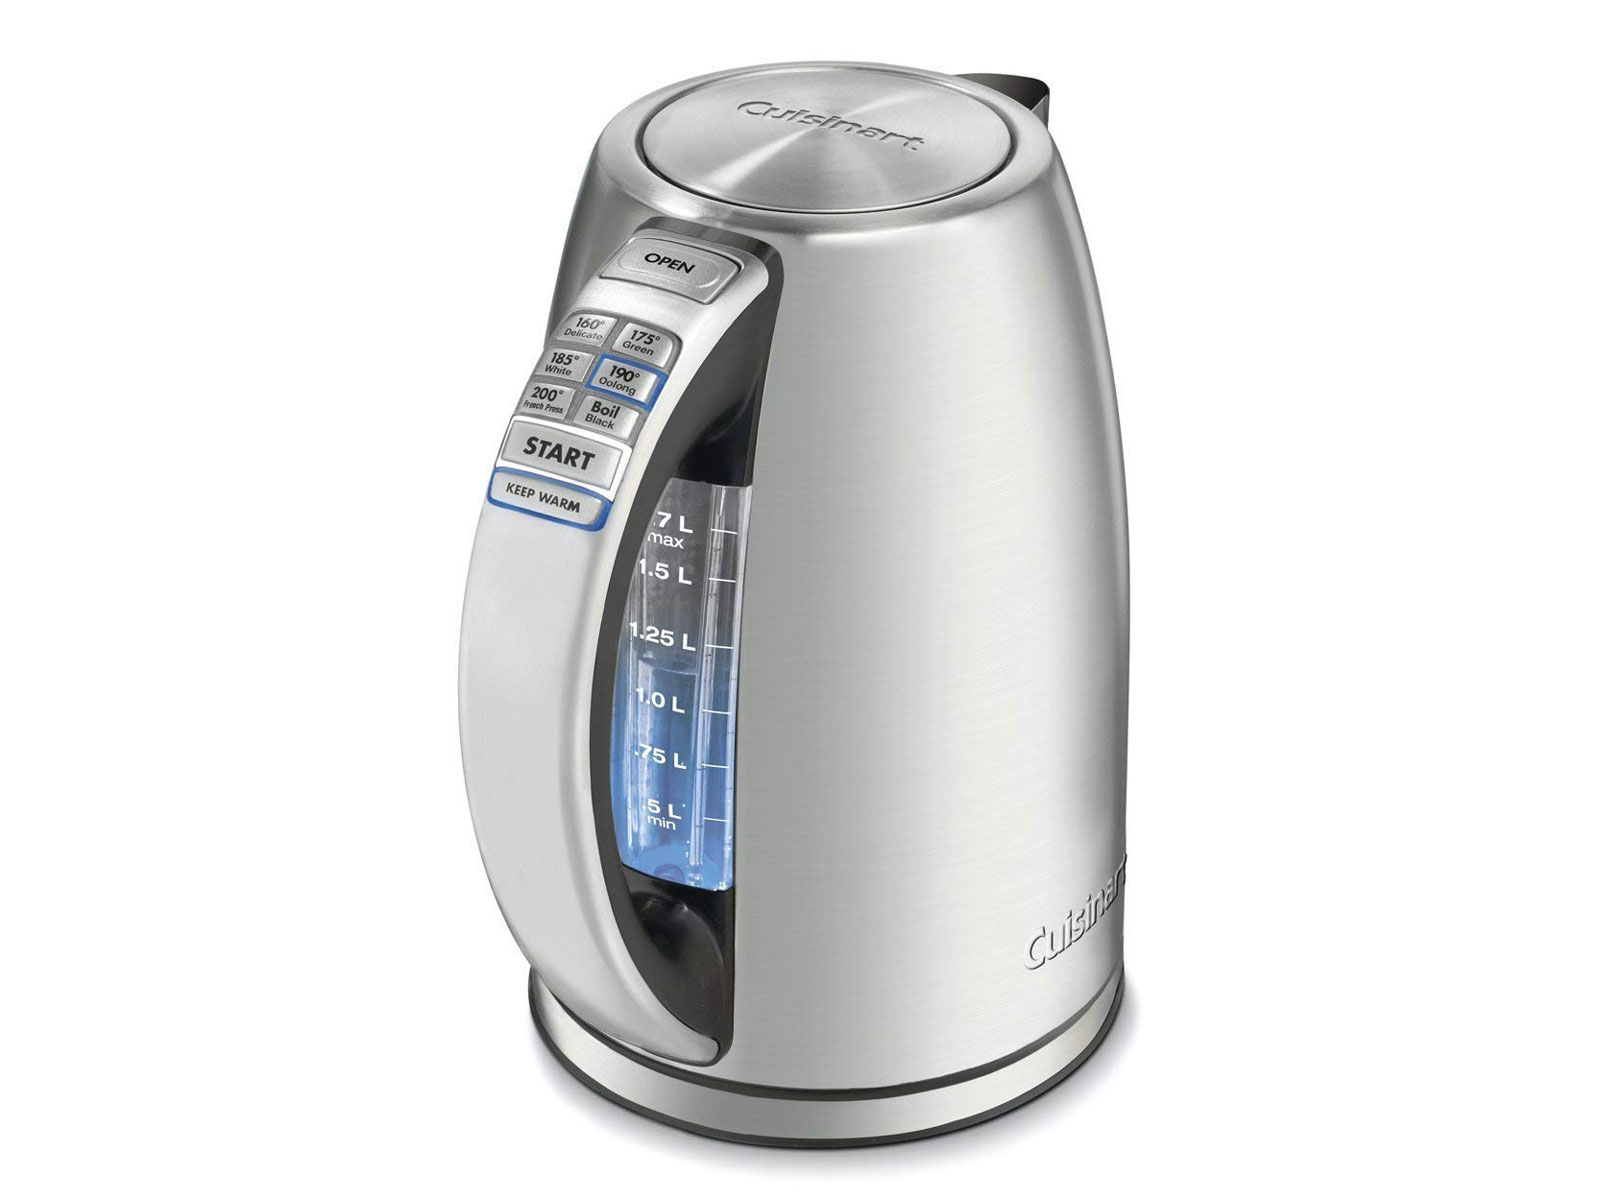 Cuisinart Electric Kettle